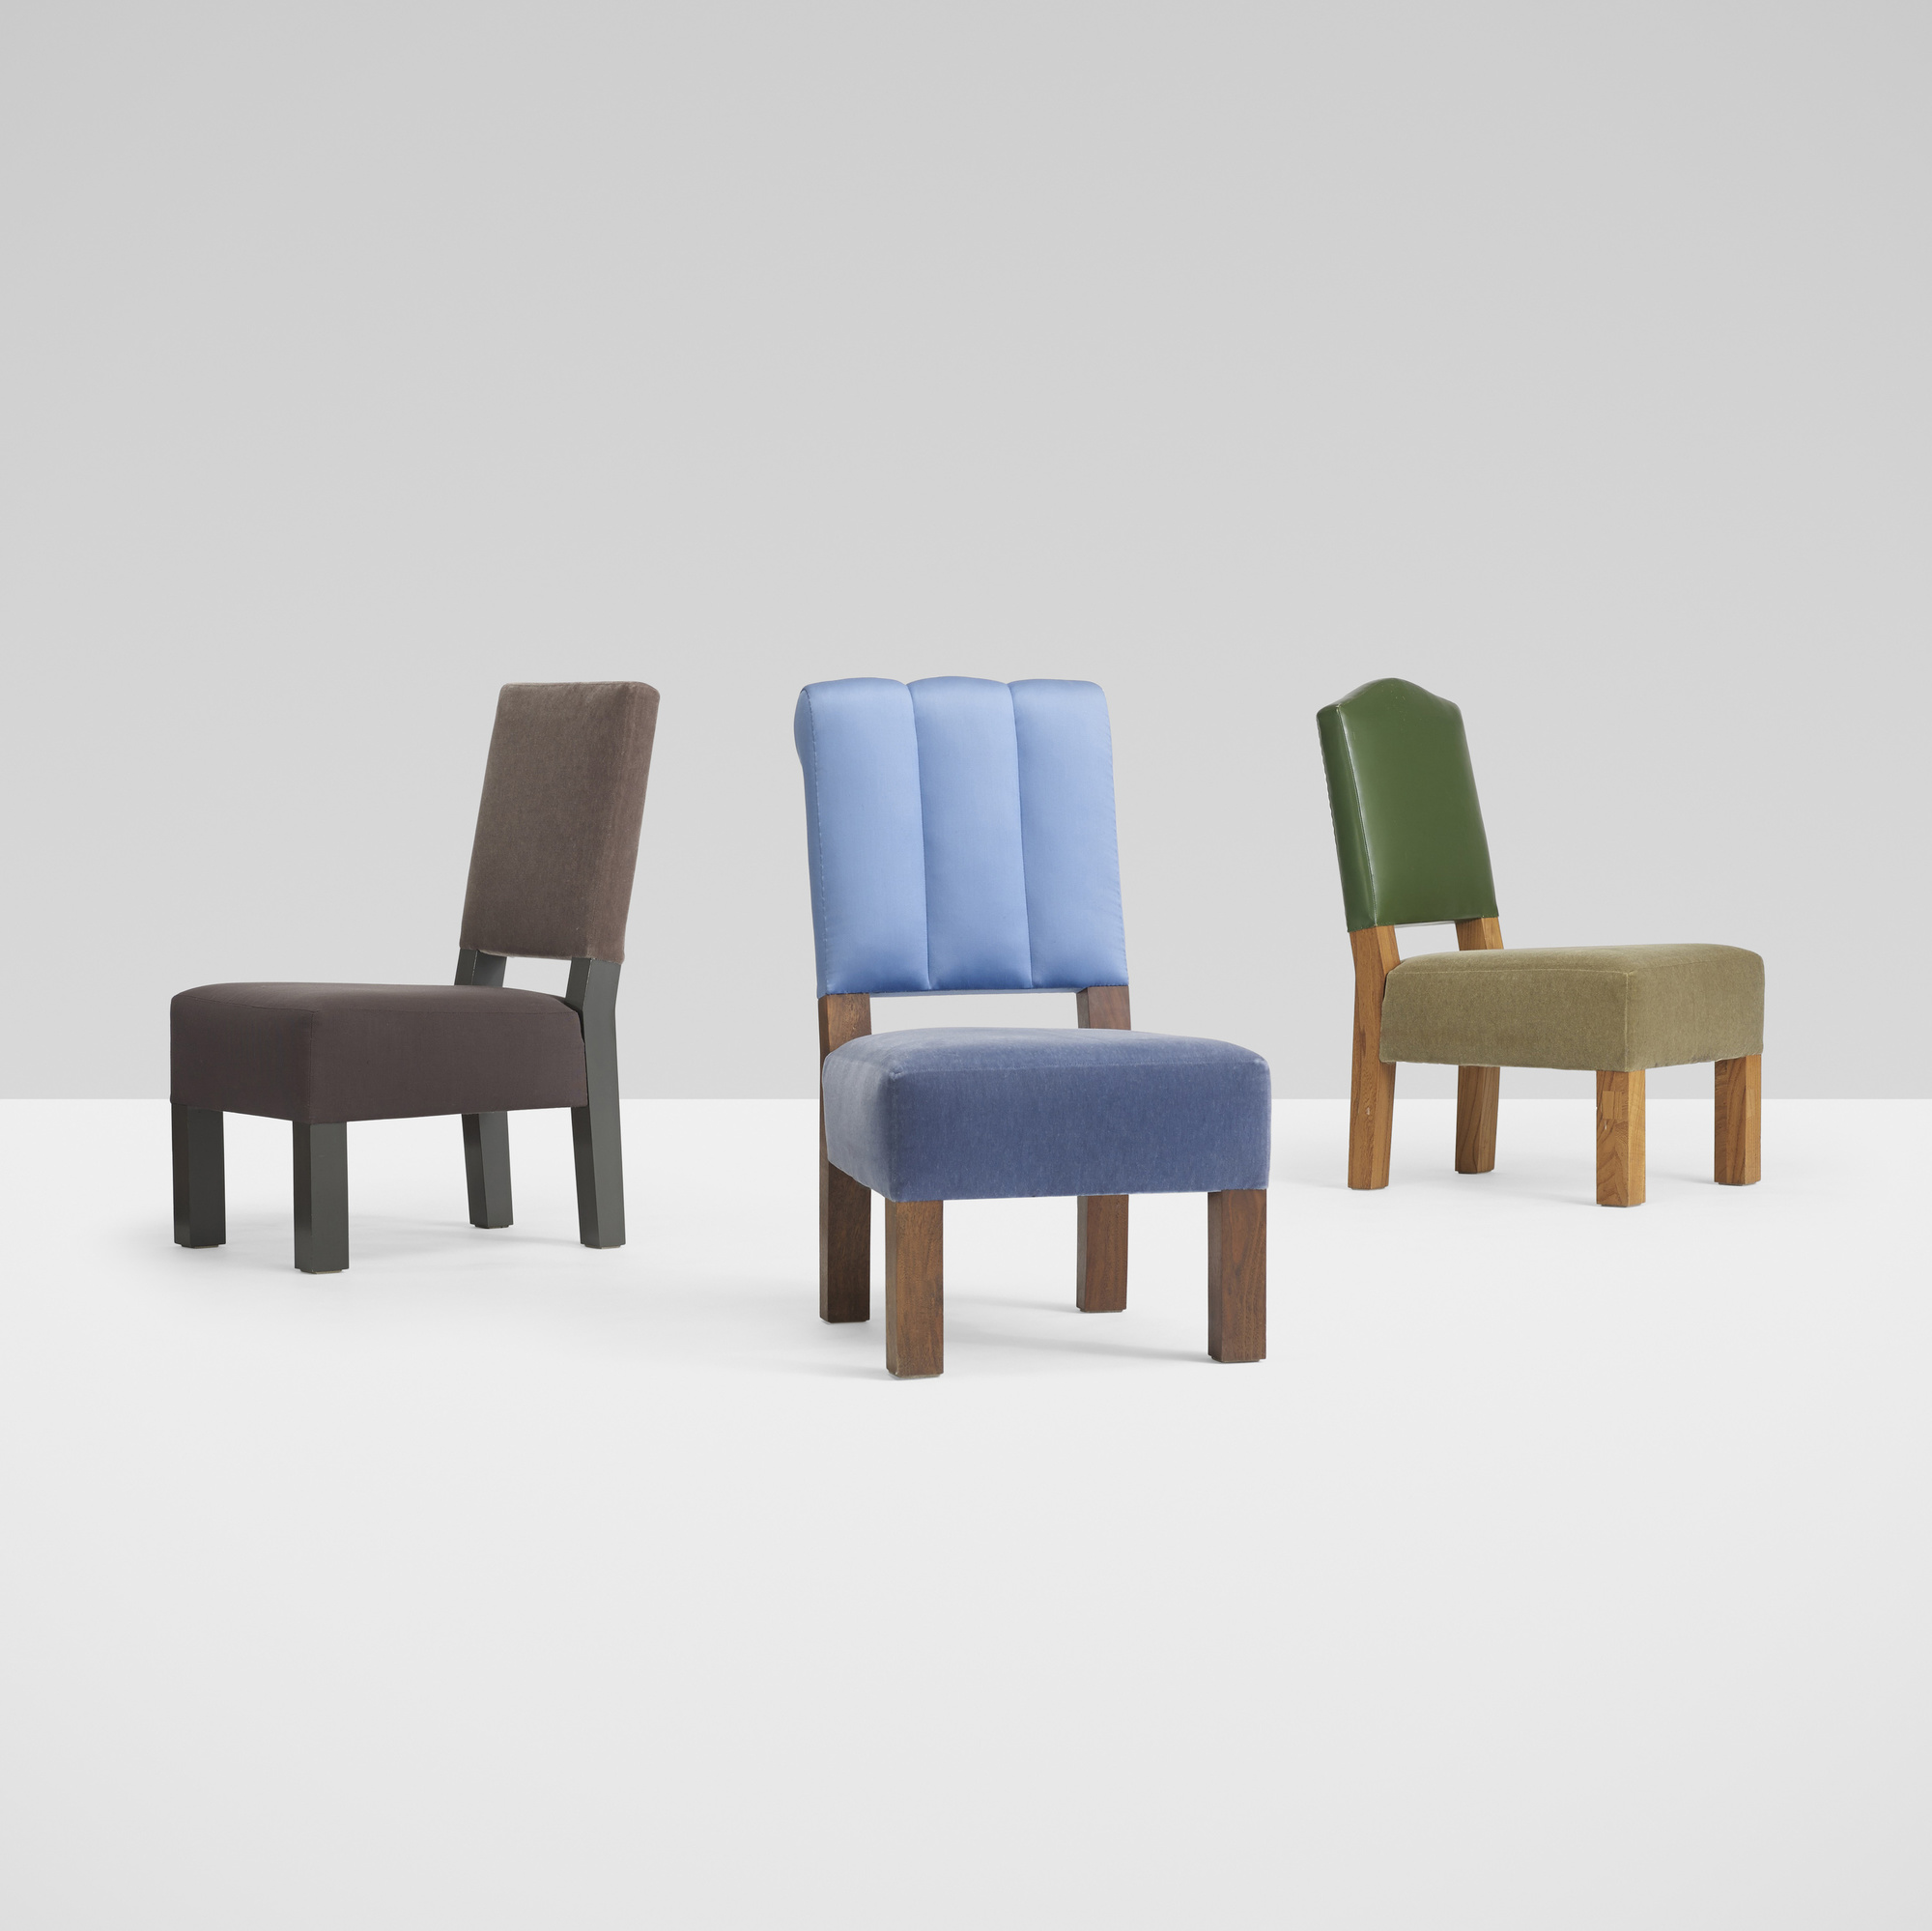 290: Roy McMakin / collection of three chairs for the Young residence, Chicago (1 of 4)